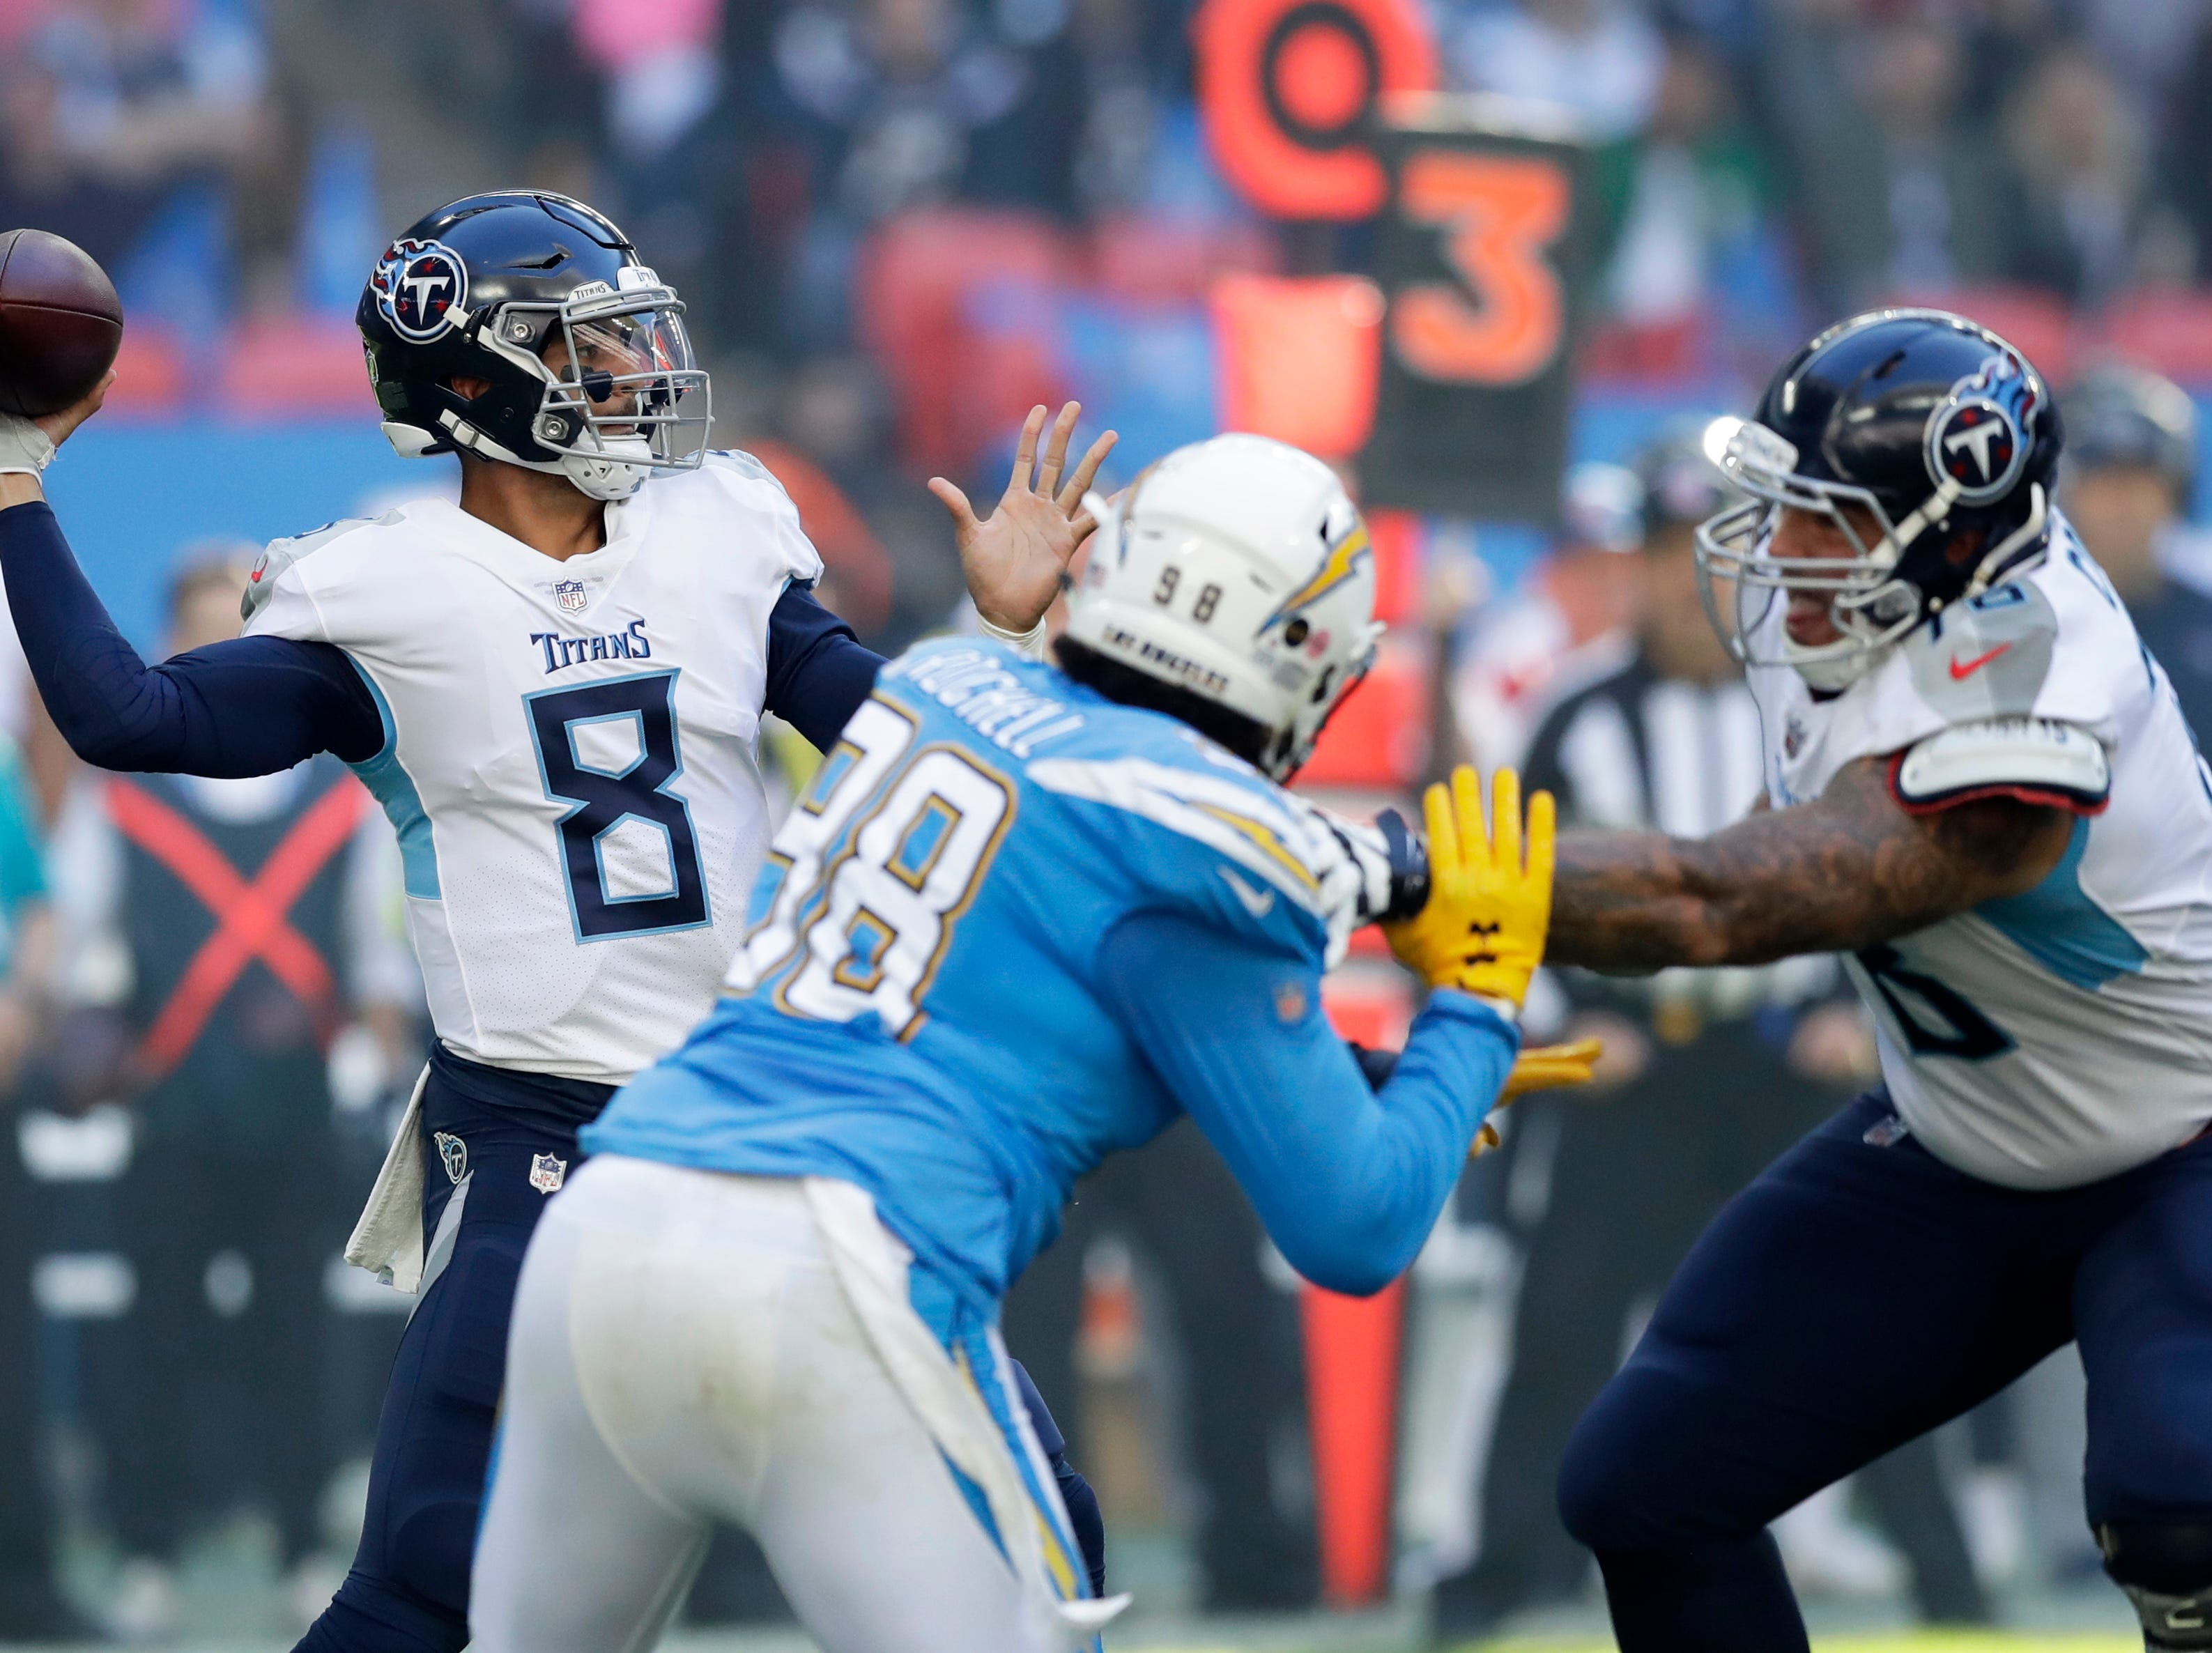 Tennessee Titans quarterback Marcus Mariota (8) passes the ball during the first half of an NFL football game against Los Angeles Chargers at Wembley stadium in London, Sunday, Oct. 21, 2018.